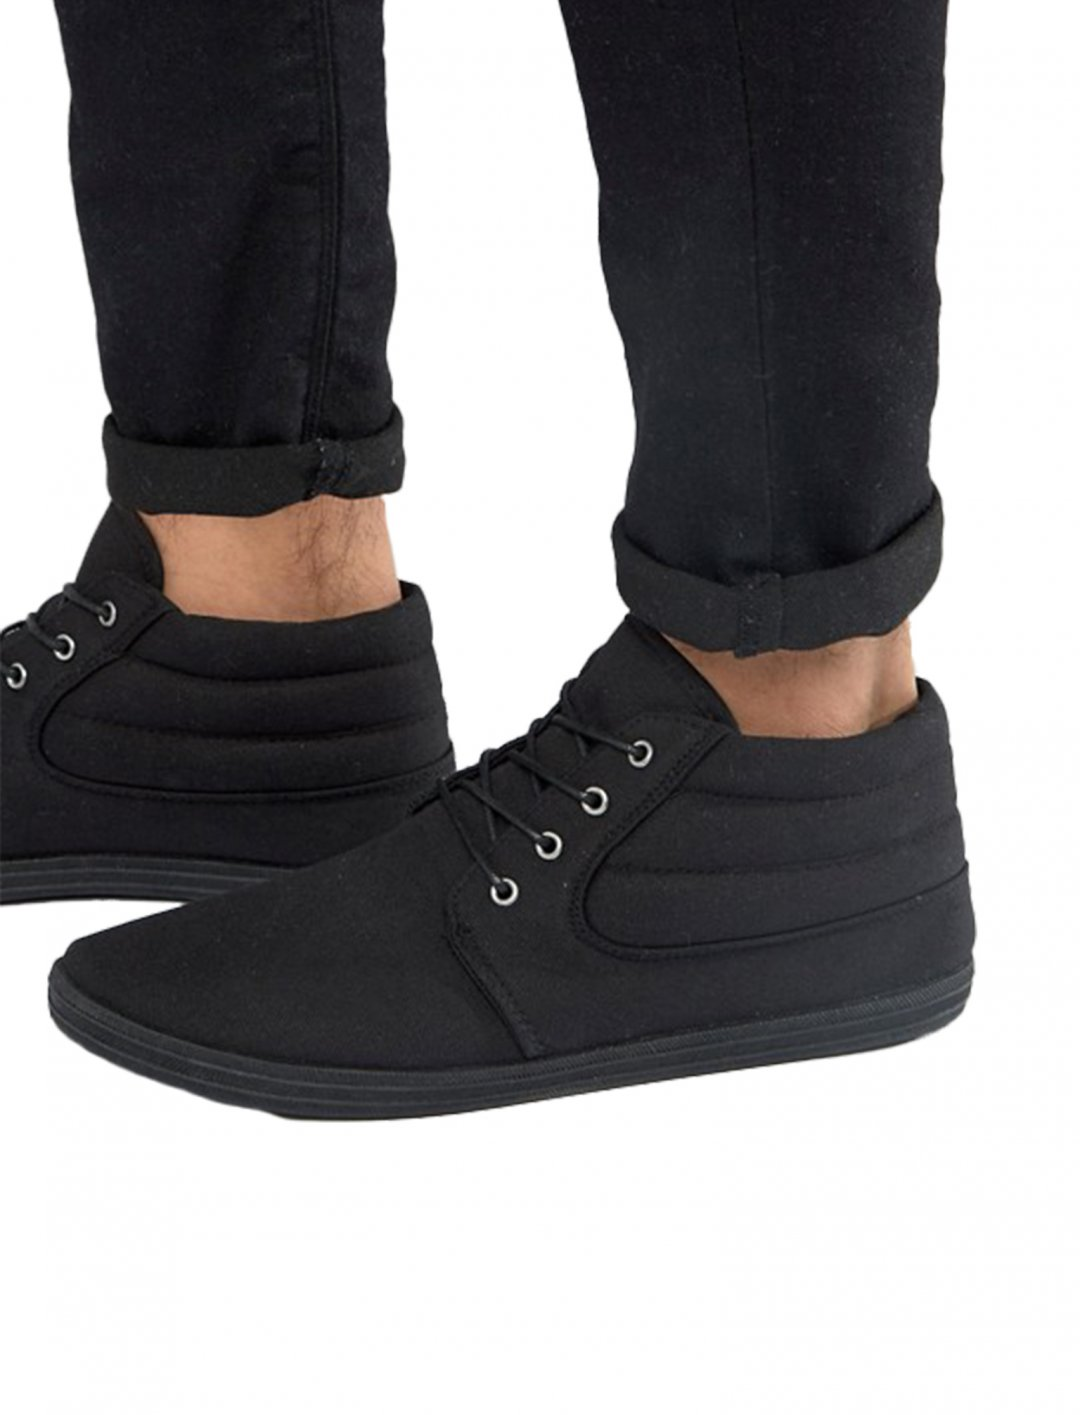 "Asos Chukka Boots {""id"":12,""product_section_id"":1,""name"":""Shoes"",""order"":12} Asos"